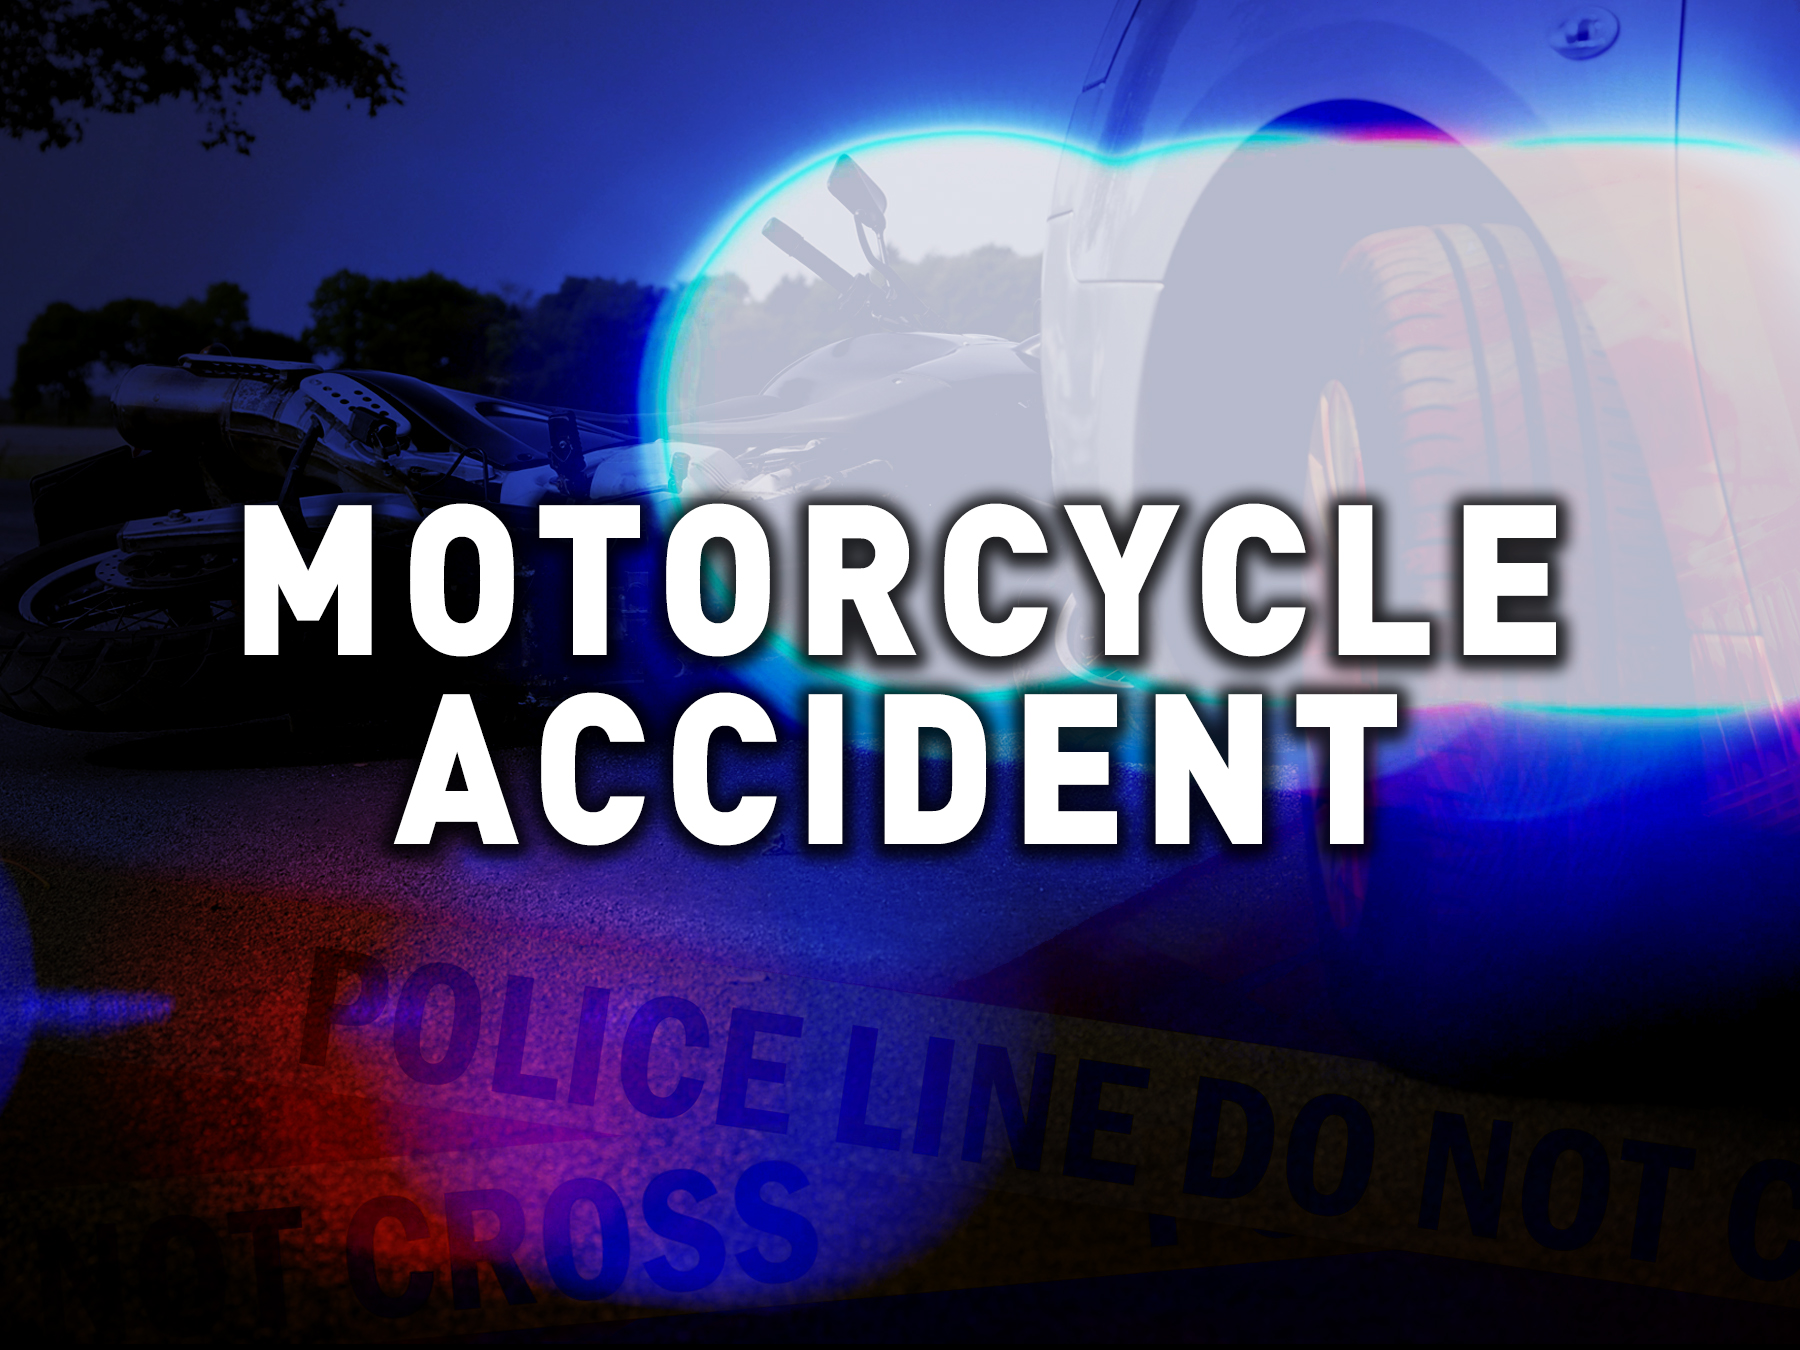 Motorcycle_Accident_1460600699288.jpg